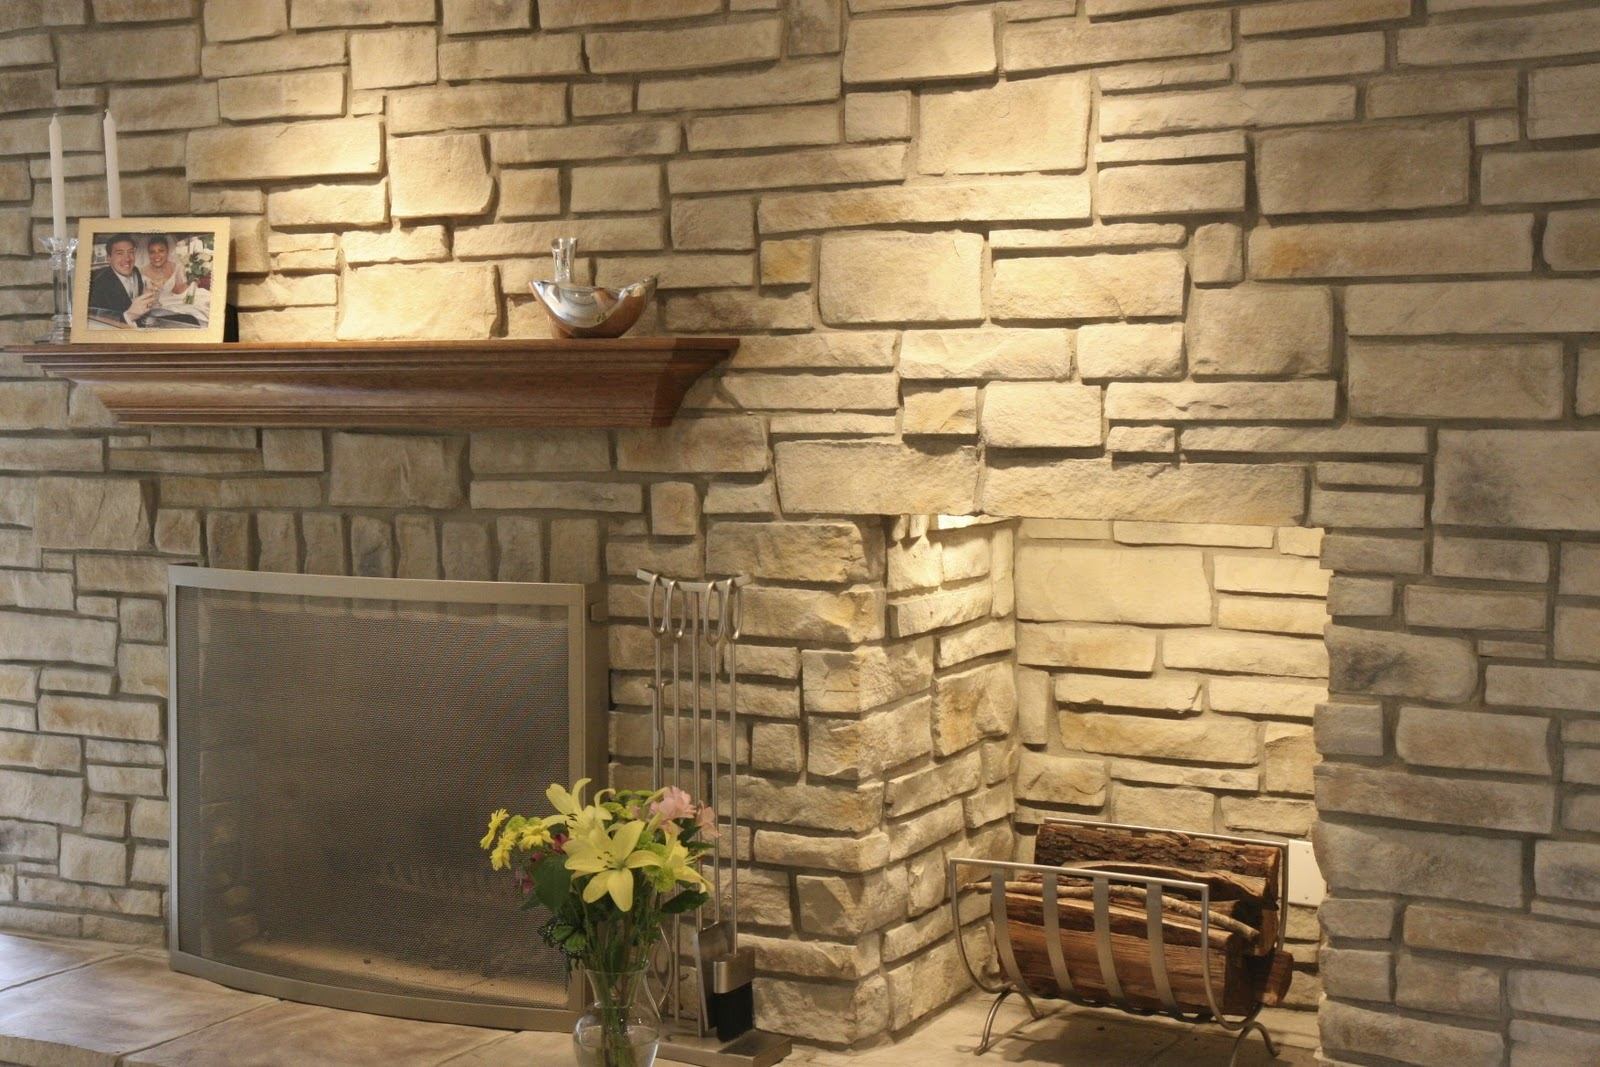 North Star Stone Stone Fireplaces Stone Exteriors Ledge Stone For Your New Stone Fireplace